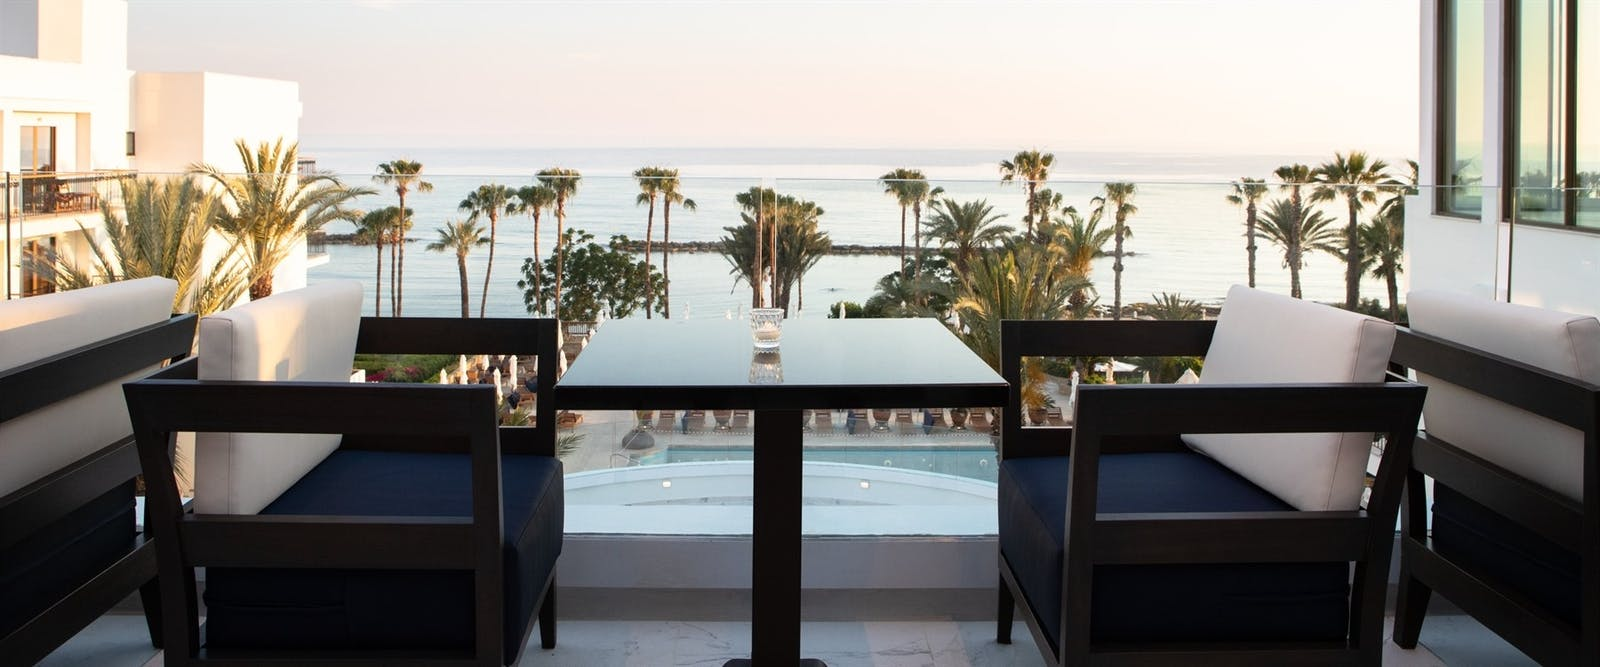 Ouranos Lounge at Annabelle, Paphos, Cyprus